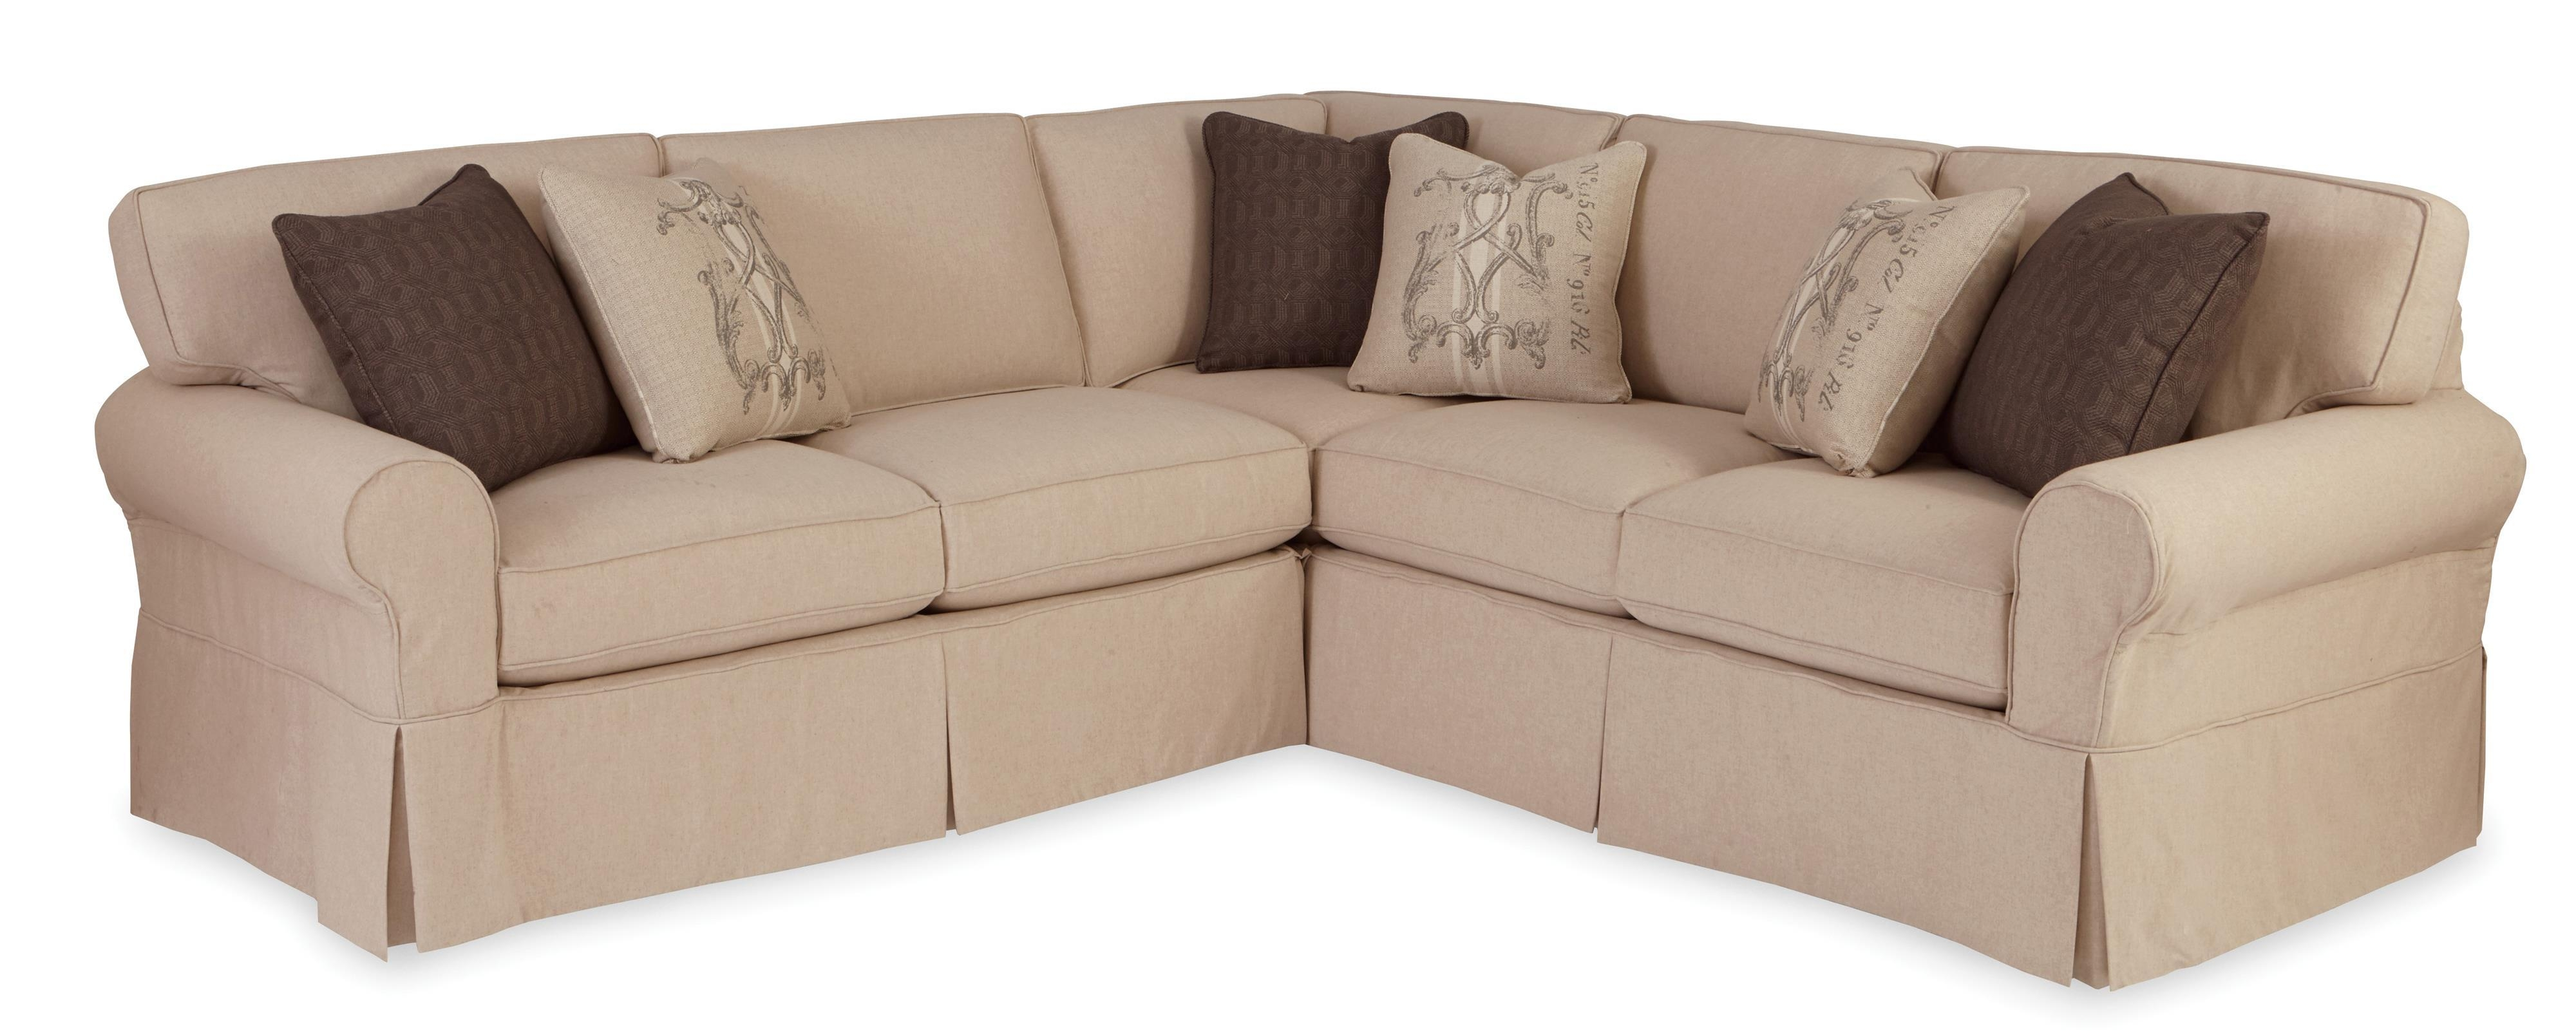 Furniture: Sectional Couch Cover | Club Chair Slipcovers Regarding Slipcover For Leather Sectional Sofas (View 6 of 21)